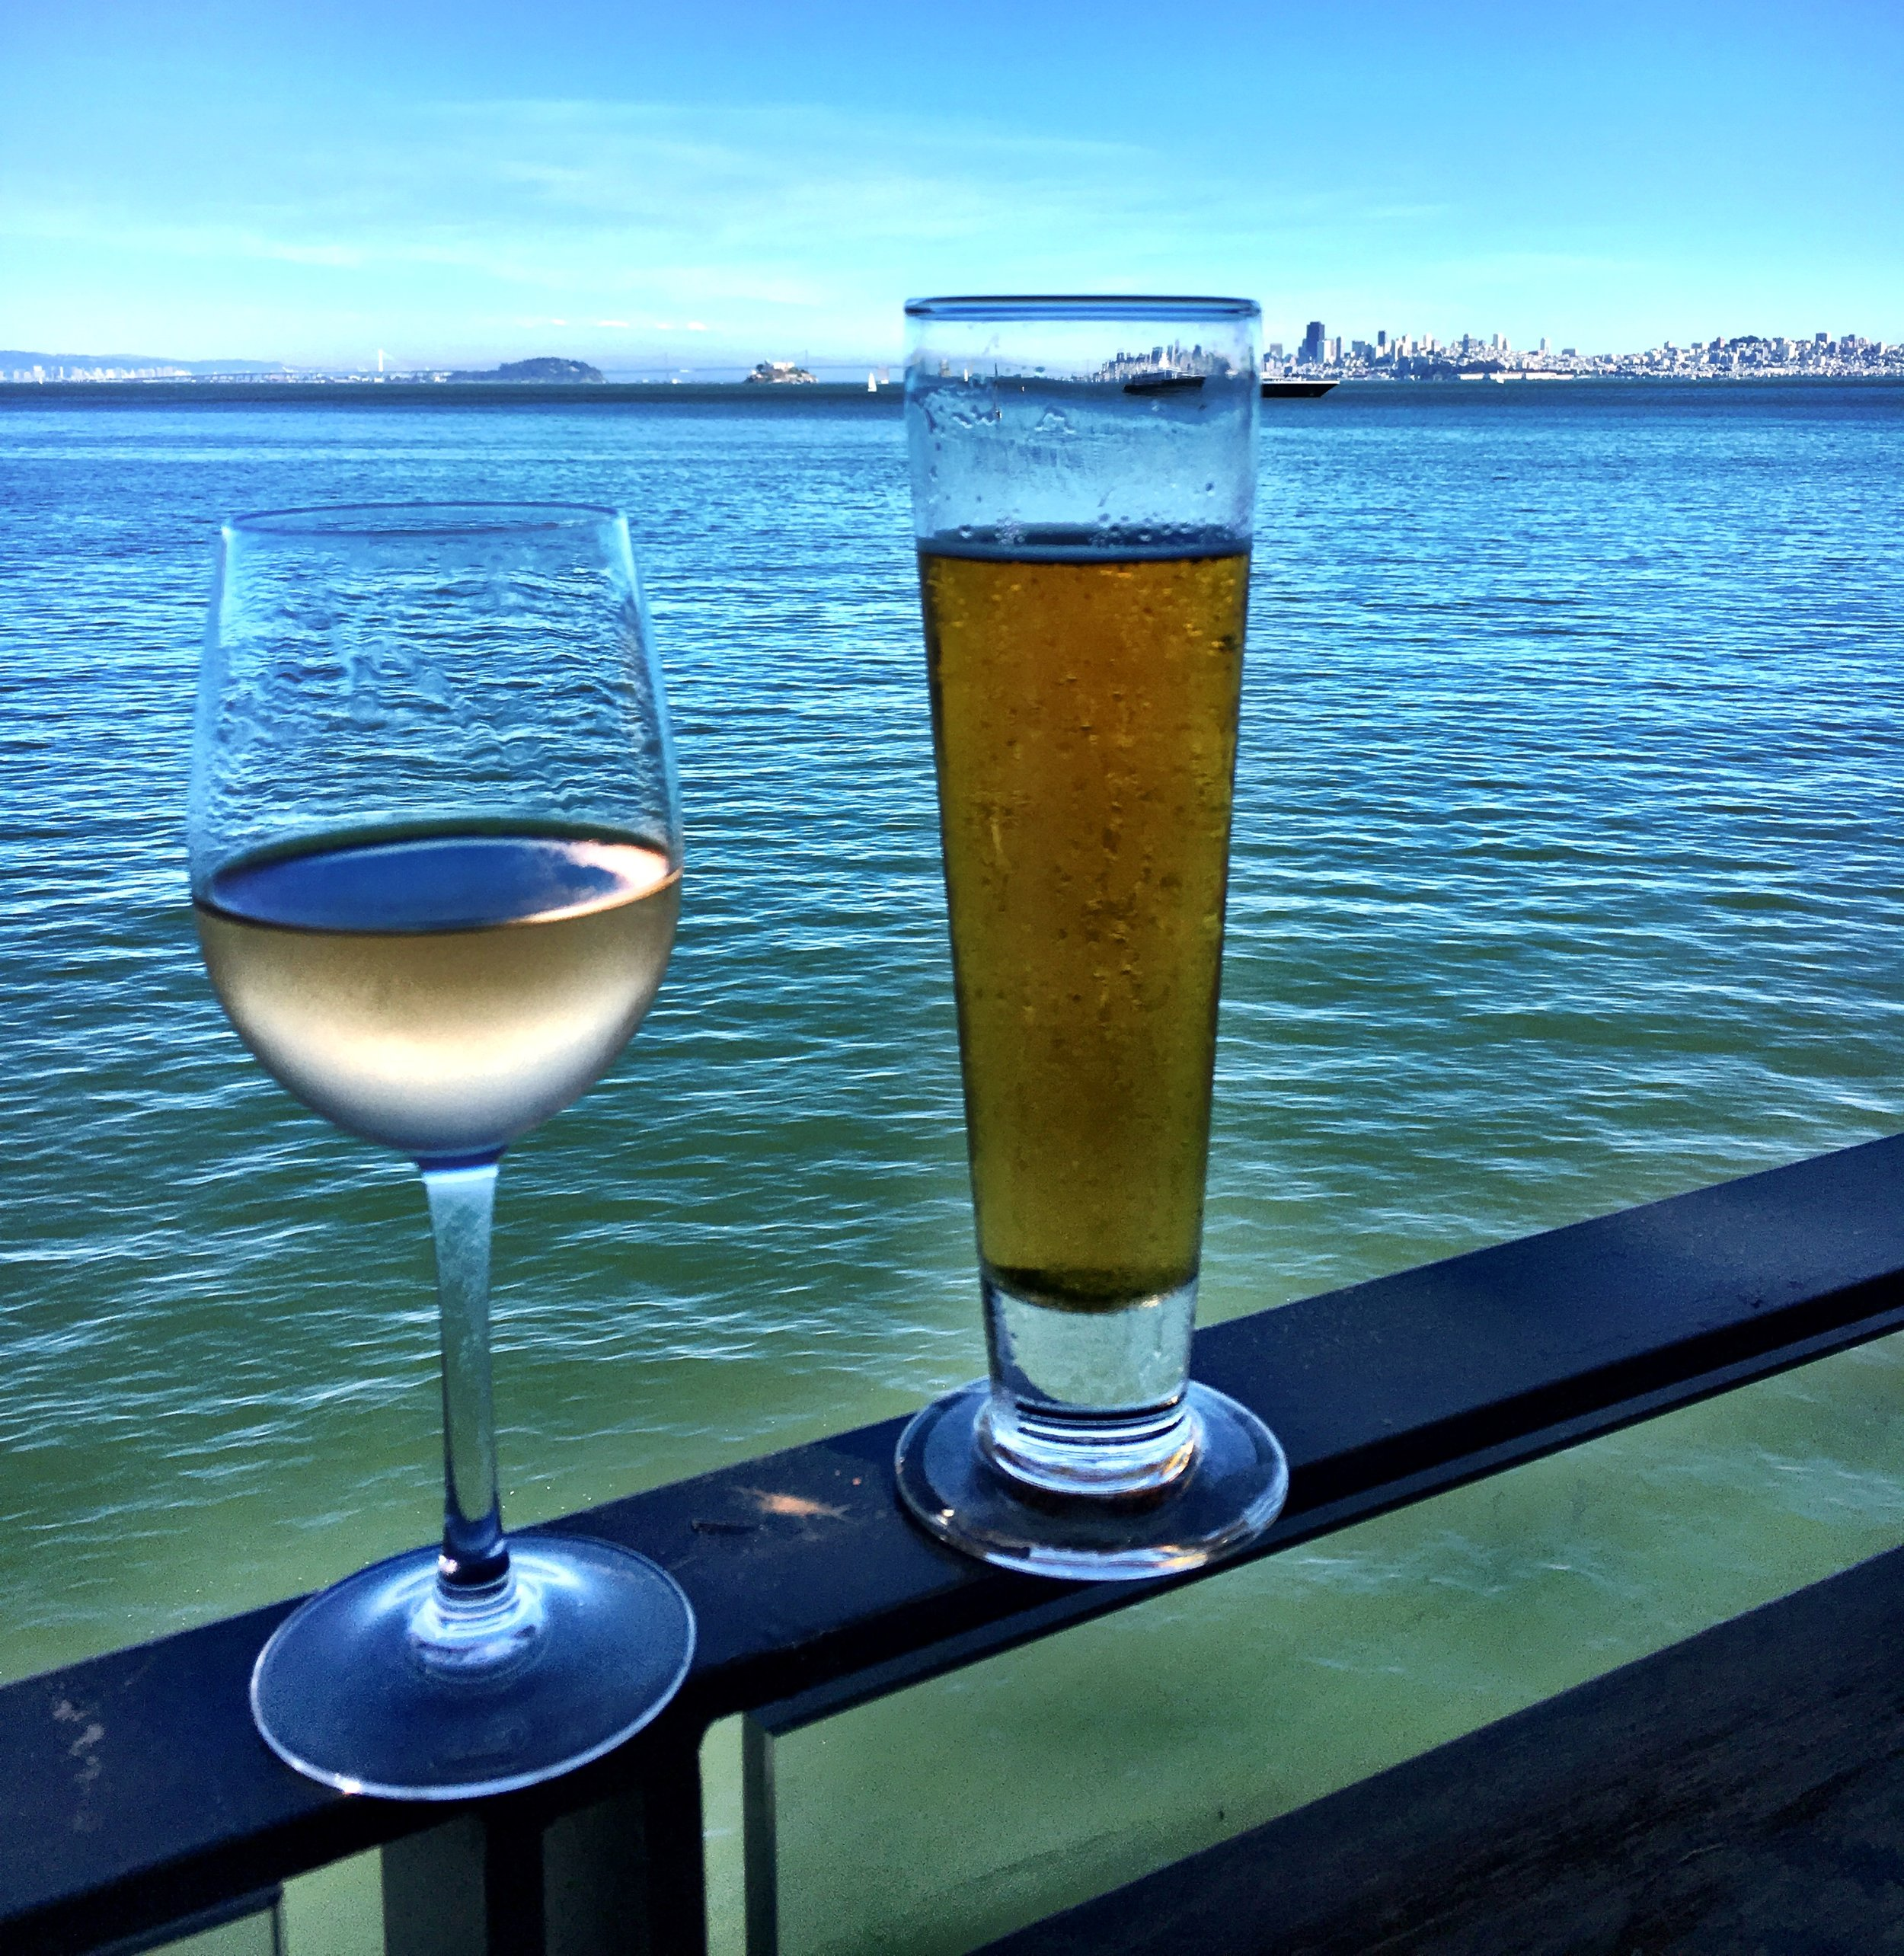 Views & booze in Sausalito